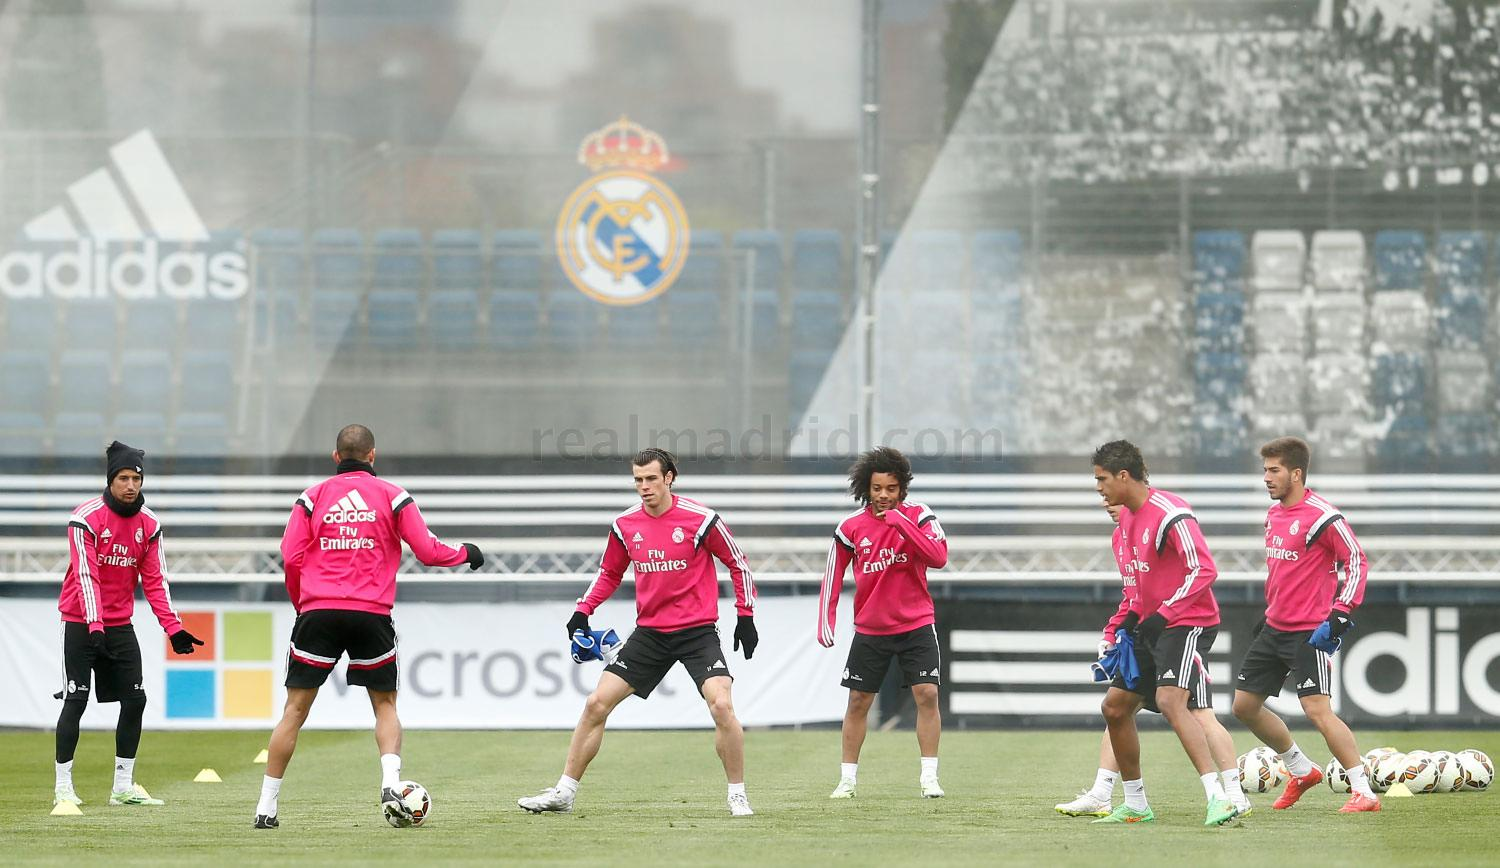 Real Madrid - Entrenamiento del Real Madrid - 20-03-2015